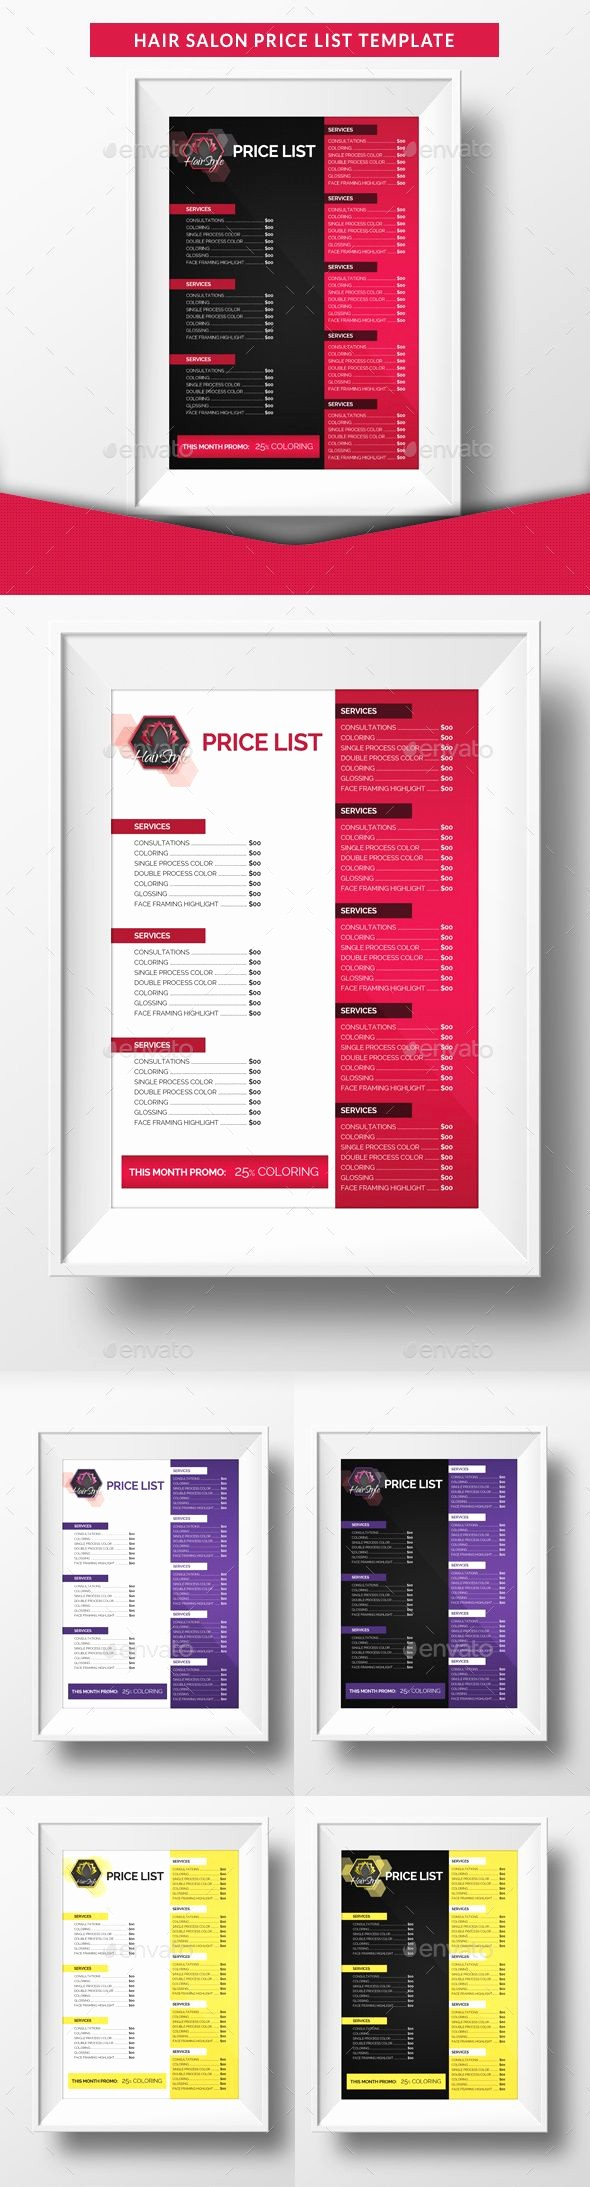 Create A Price List Template Elegant Hair Salon Price List Template